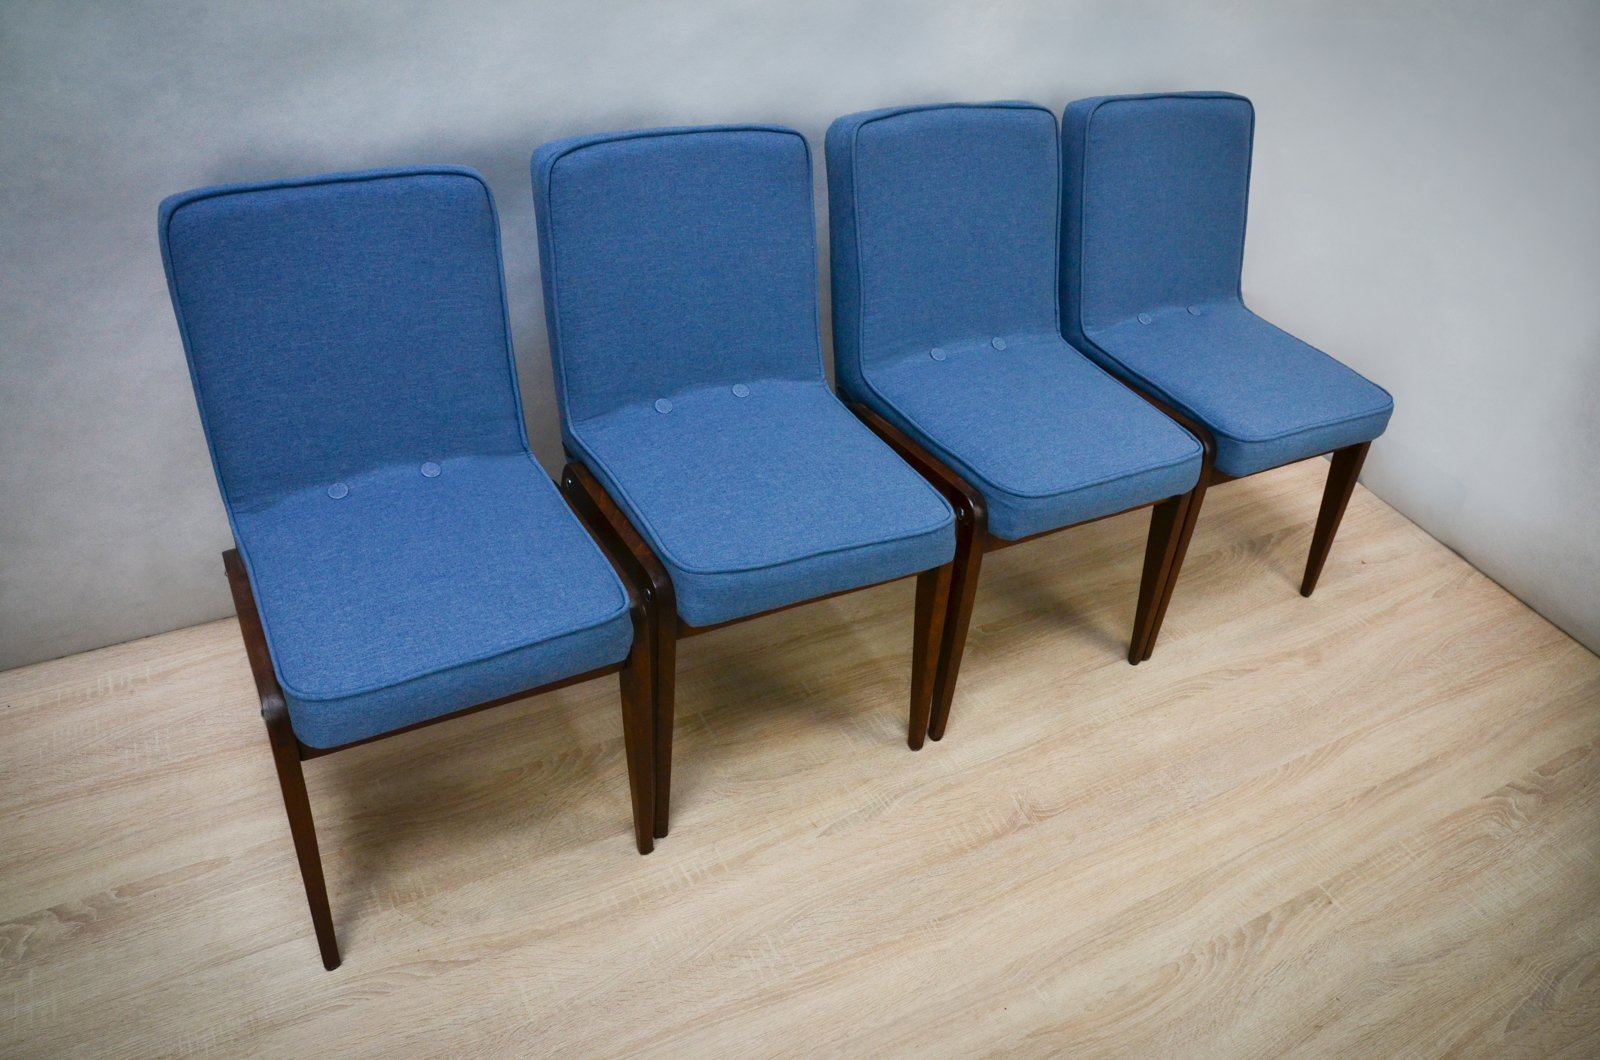 aga light blue dining chairs by józef marian chierowski s  - aga light blue dining chairs by józef marian chierowski s set of